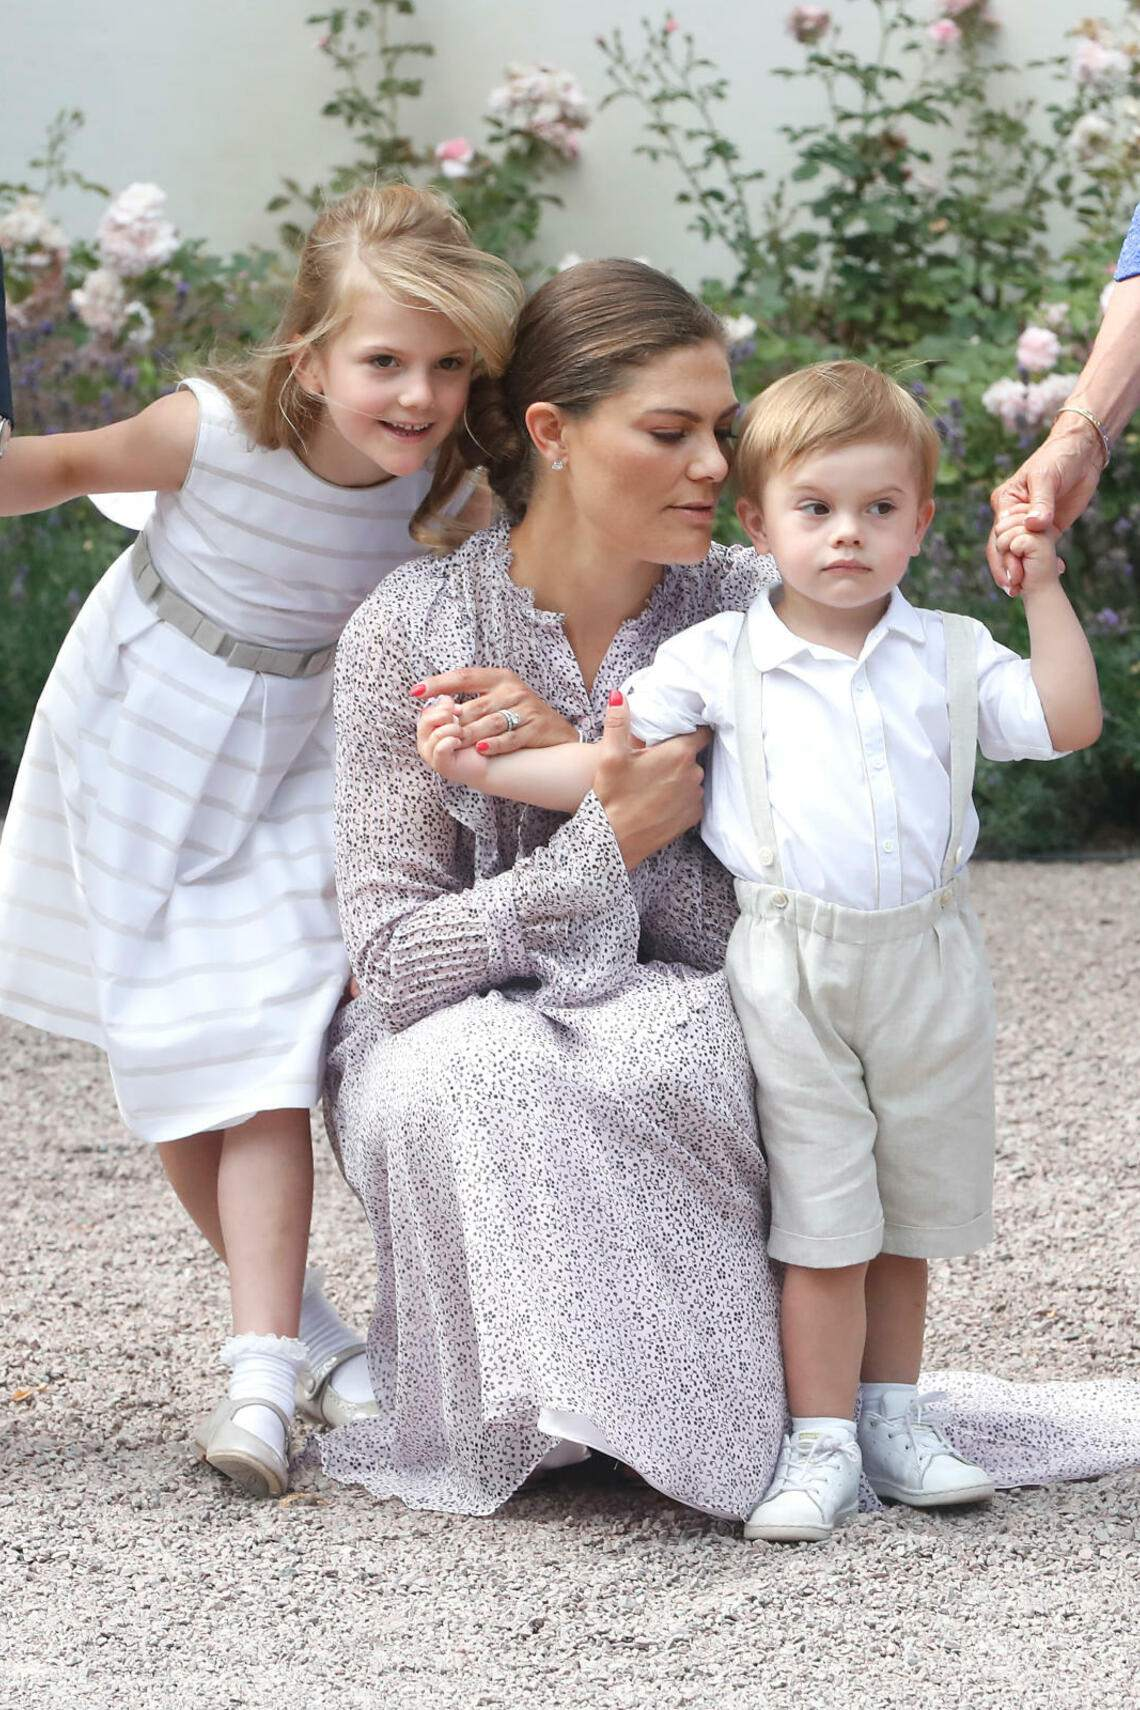 OLAND, SWEDEN - JULY 14: (L-R) Princess Estelle of Sweden, Crown Princess Victoria of Sweden and Prince Oscar of Sweden during the occasion of The Crown Princess Victoria of Sweden's 41st birthday celebrations at Solliden Palace on July 14, 2018 in Oland, Sweden. (Photo by Michael Campanella/WireImage)